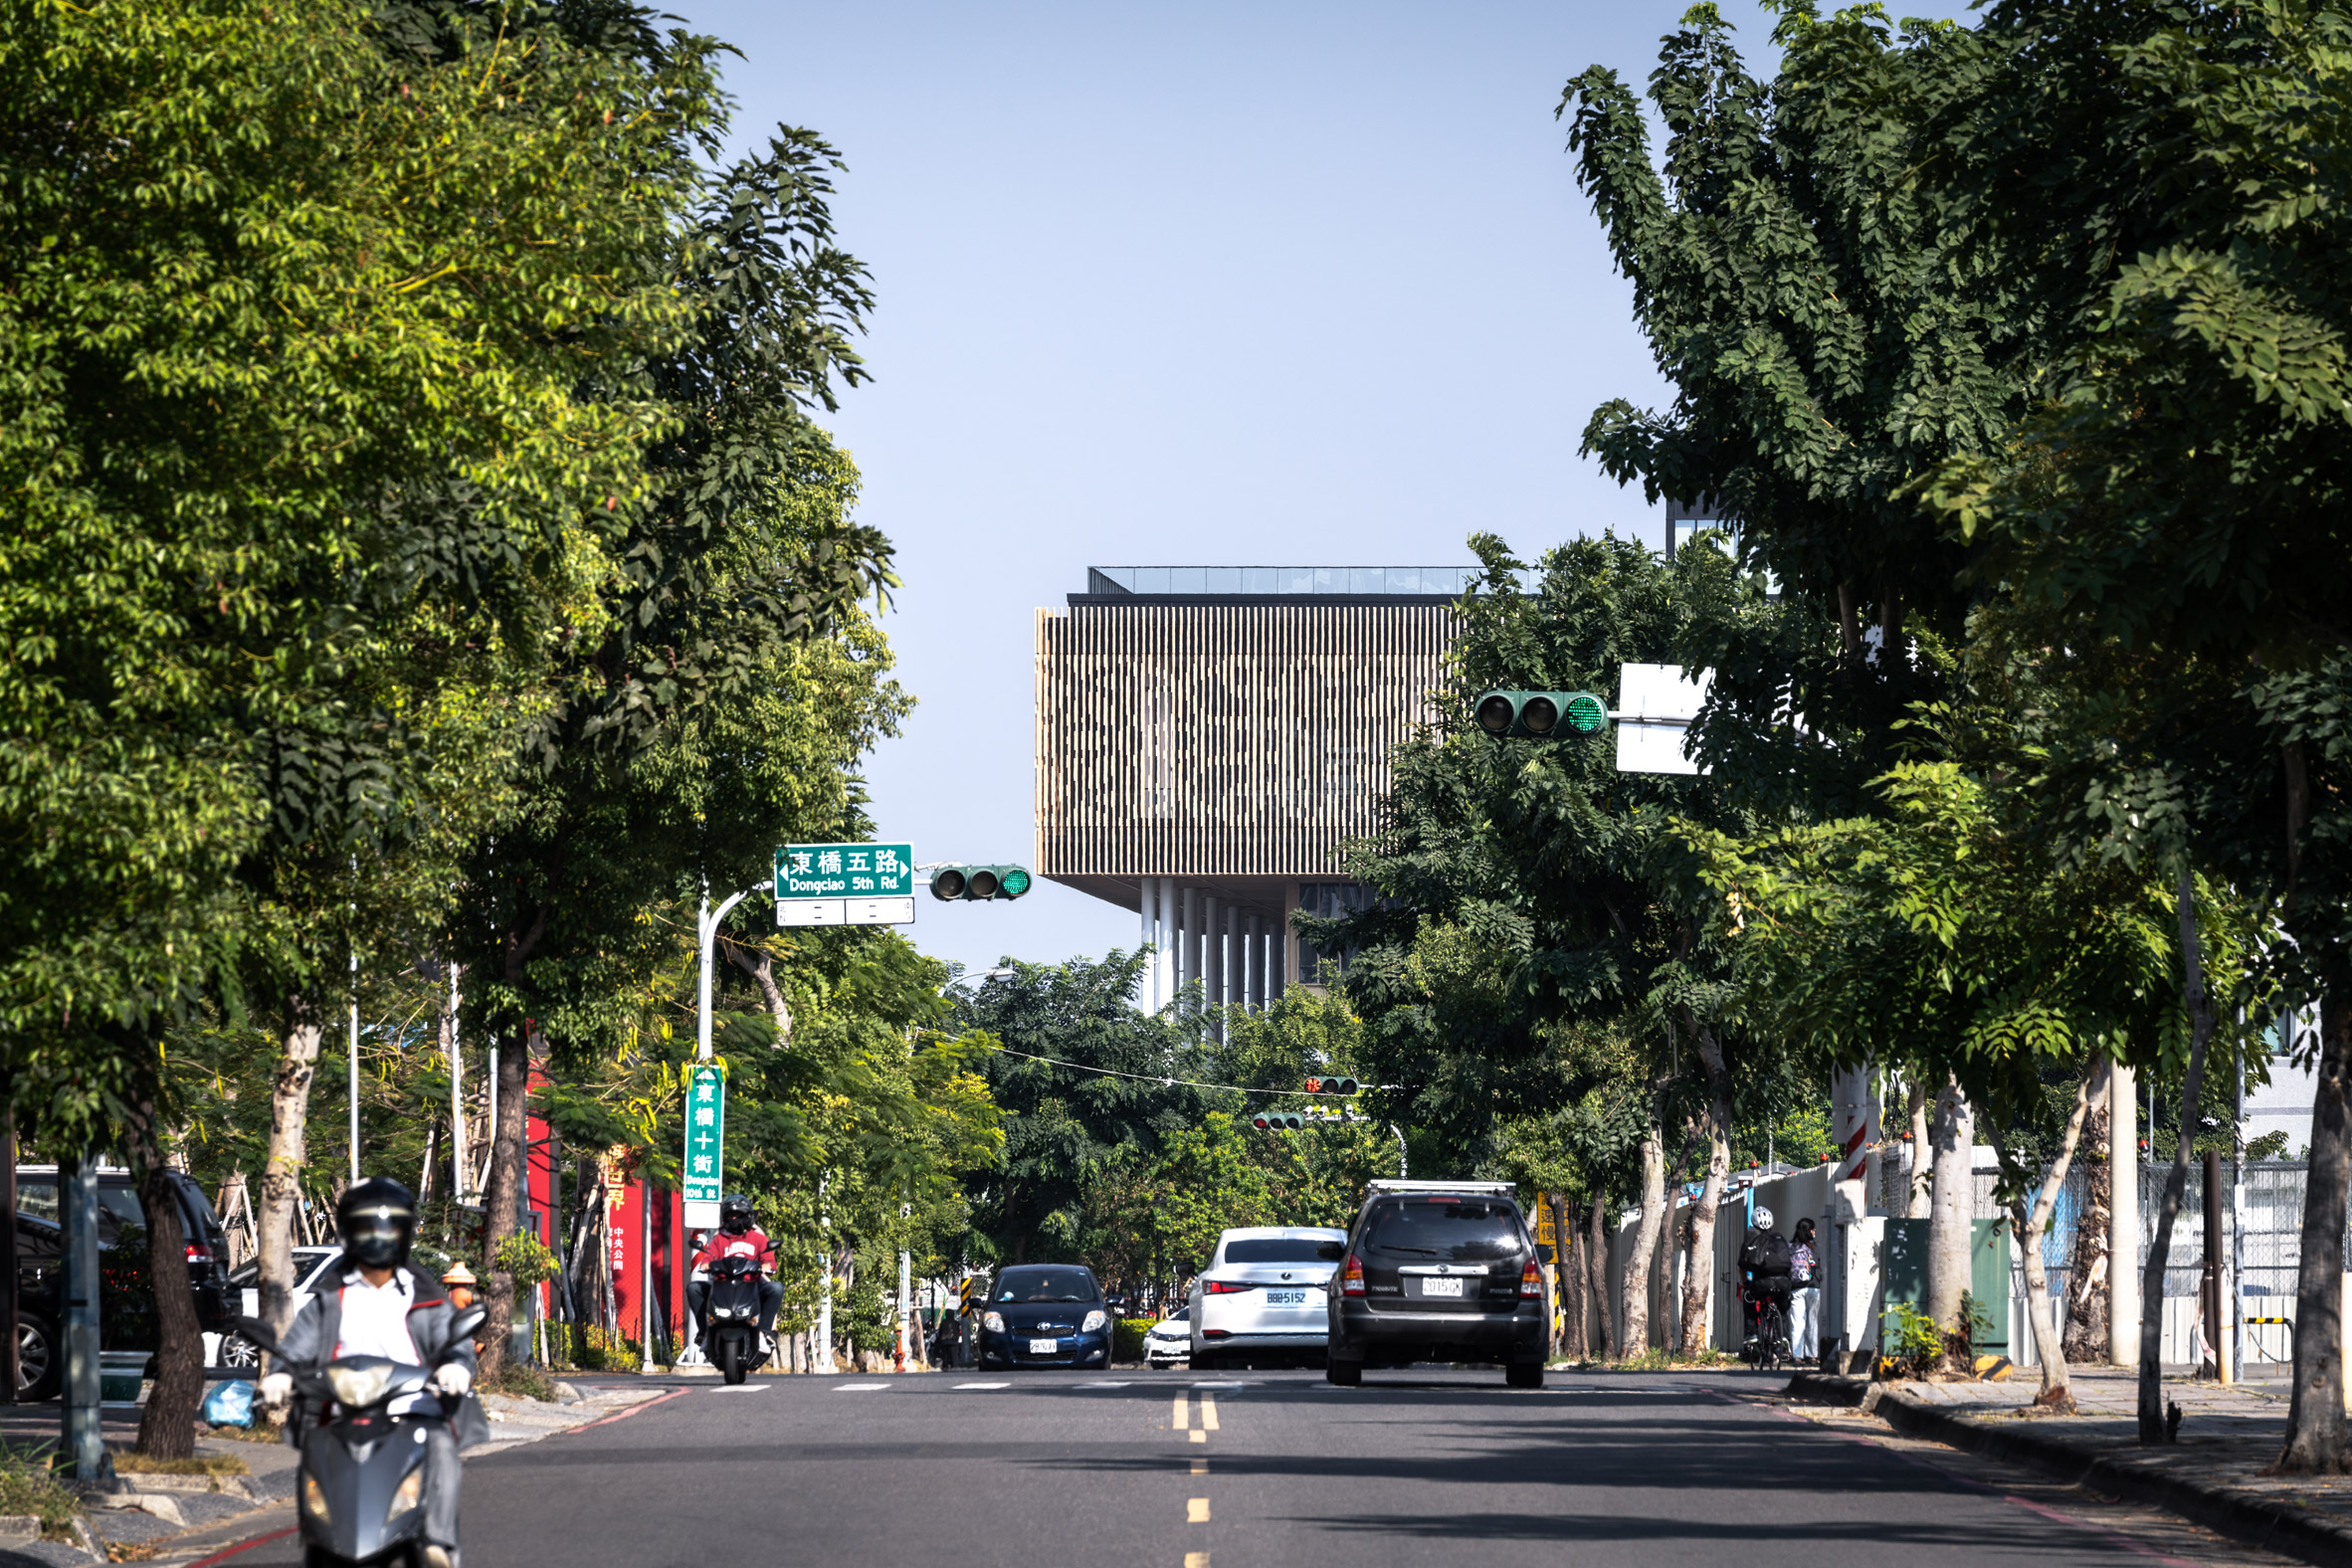 A distant view of Tainan Public Library